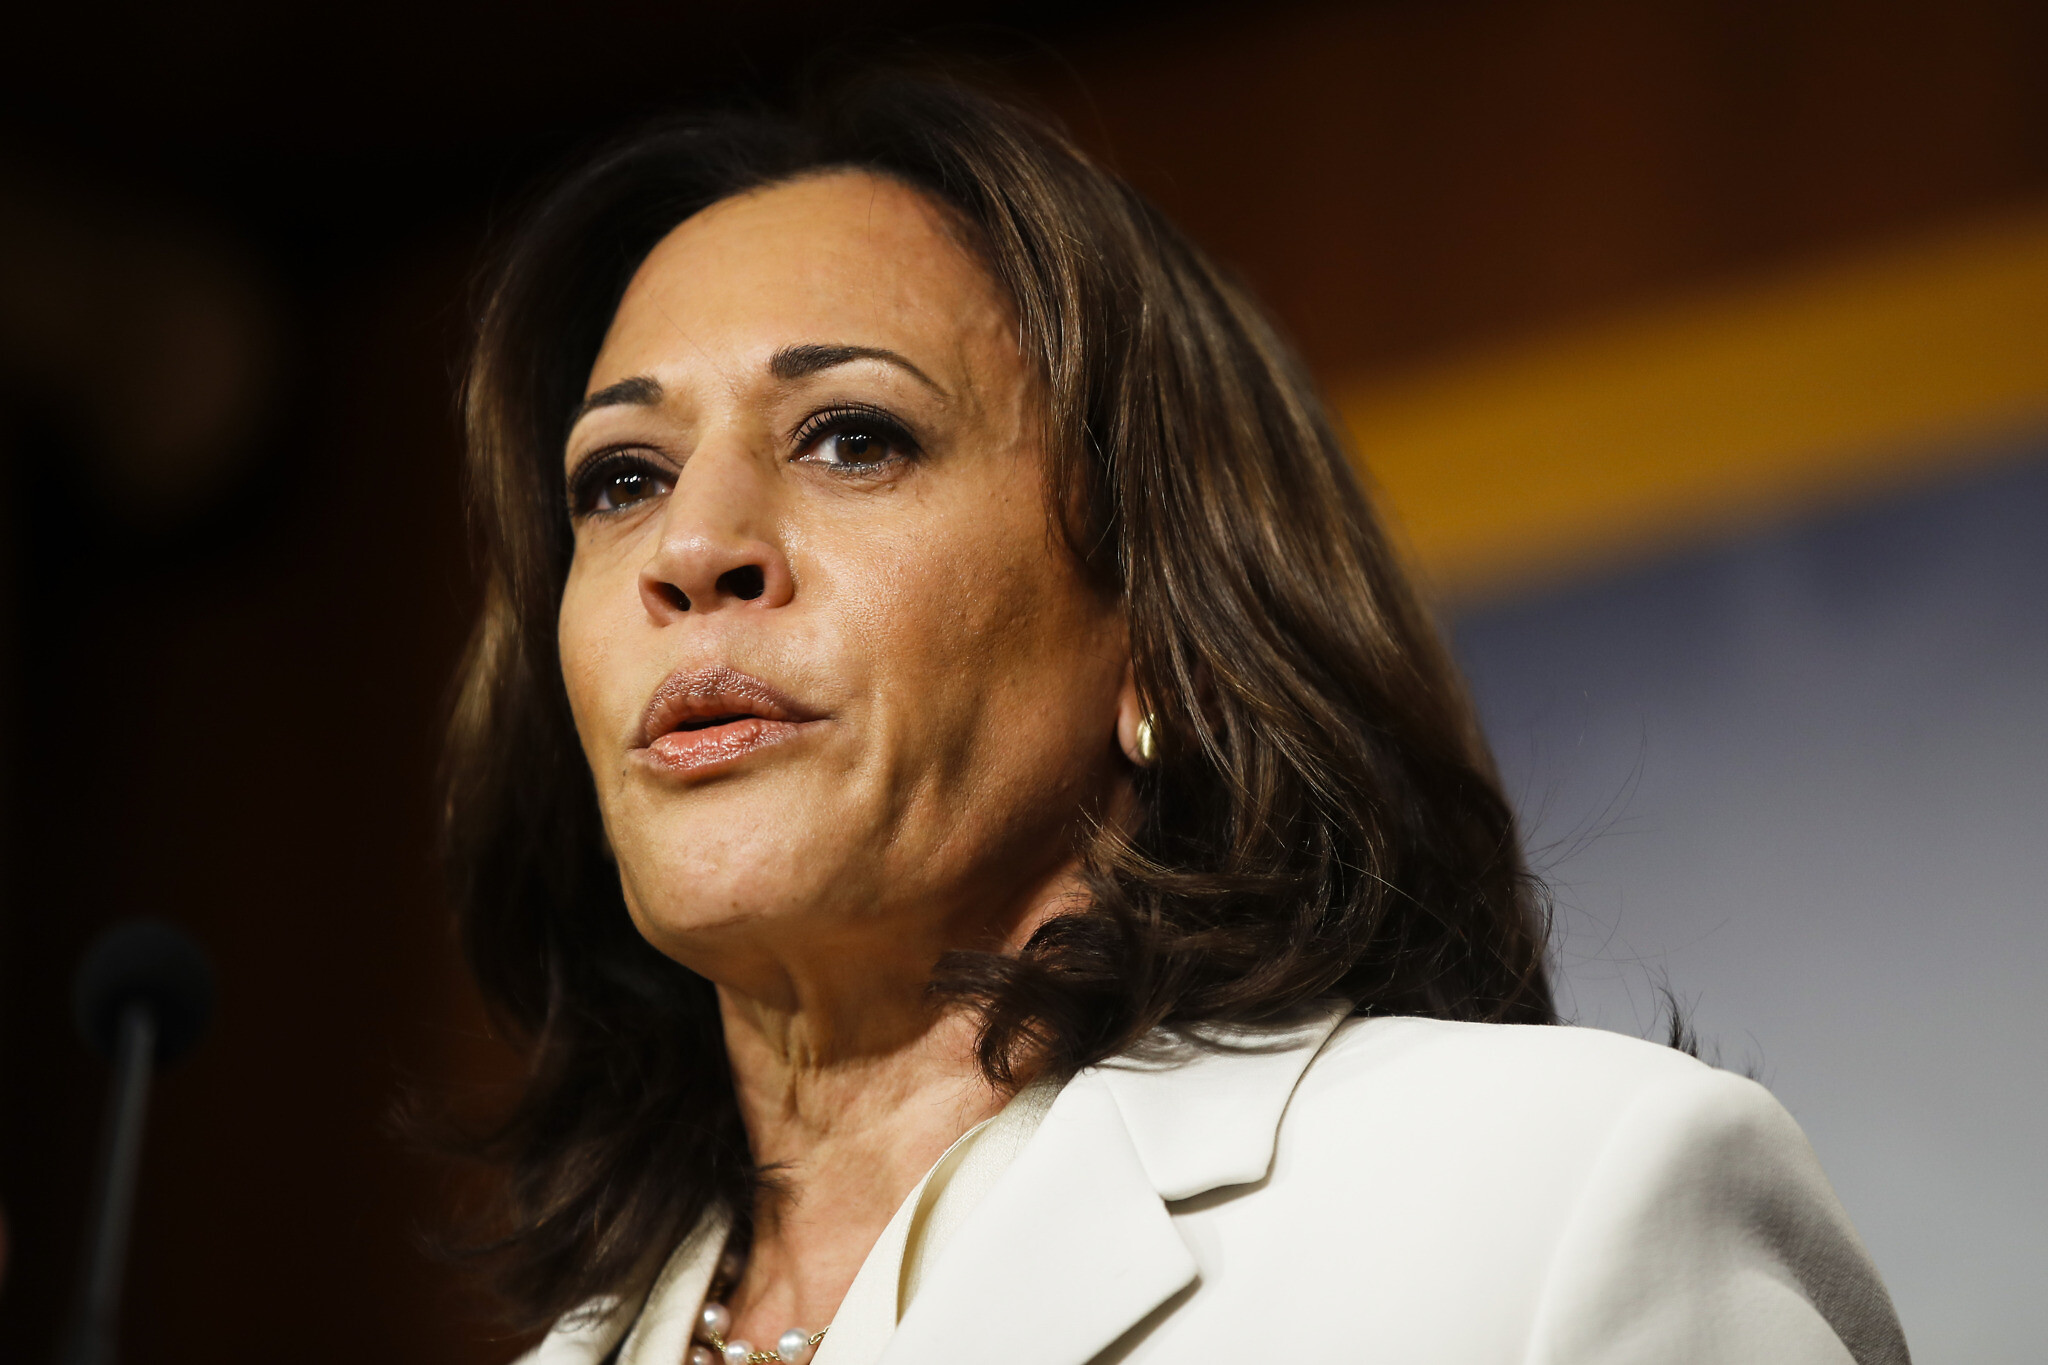 5 Jewish things to know about US vice president candidate Kamala Harris | The Times of Israel